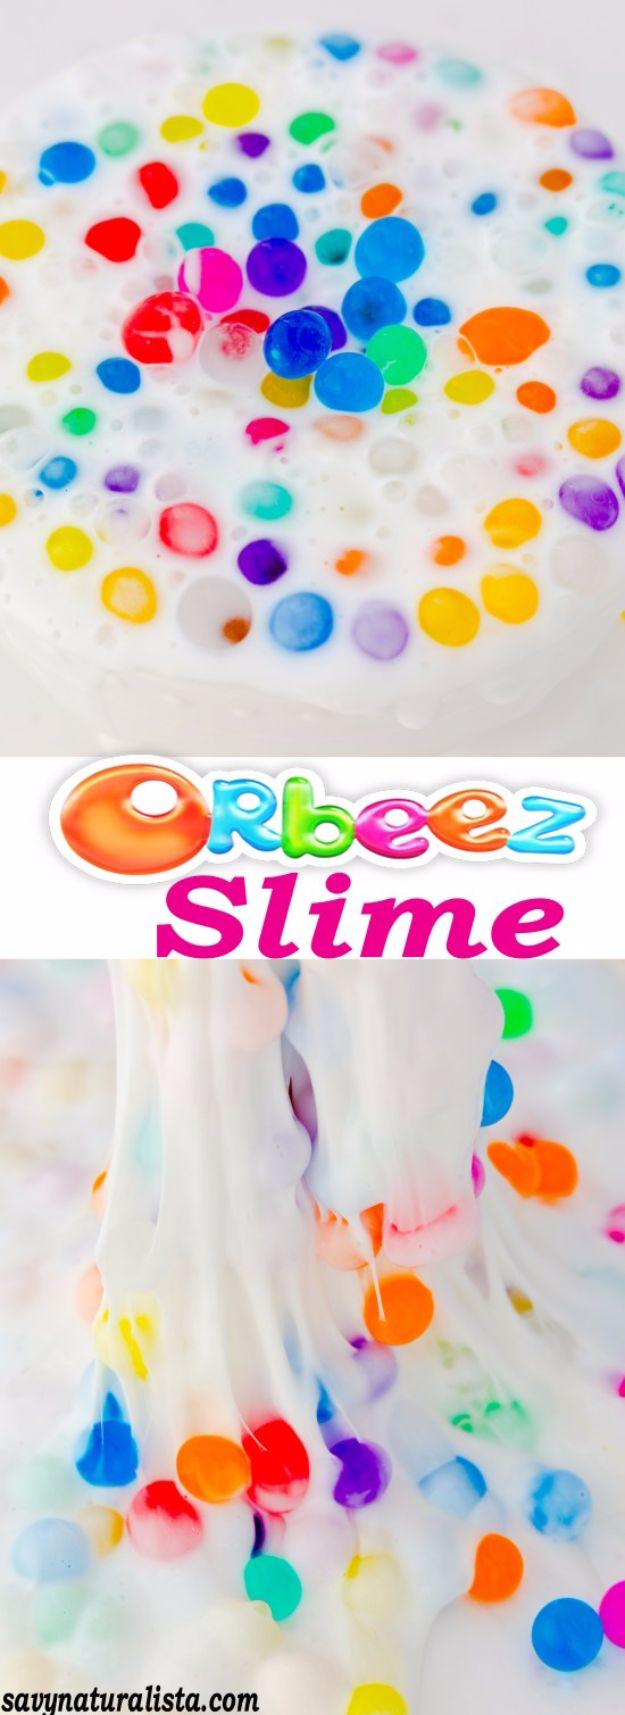 Borax Free Slime Recipes - Toothpaste Orbeez Slime - Safe Slimes To Make Without Glue - How To Make Fluffy Slime With Shaving Cream - Easy 3 Ingredients Glitter Slime, Clear, Galaxy, Best DIY Slime Tutorials With Step by Step Instructions http://diyprojectsforteens.com/borax-free-slime